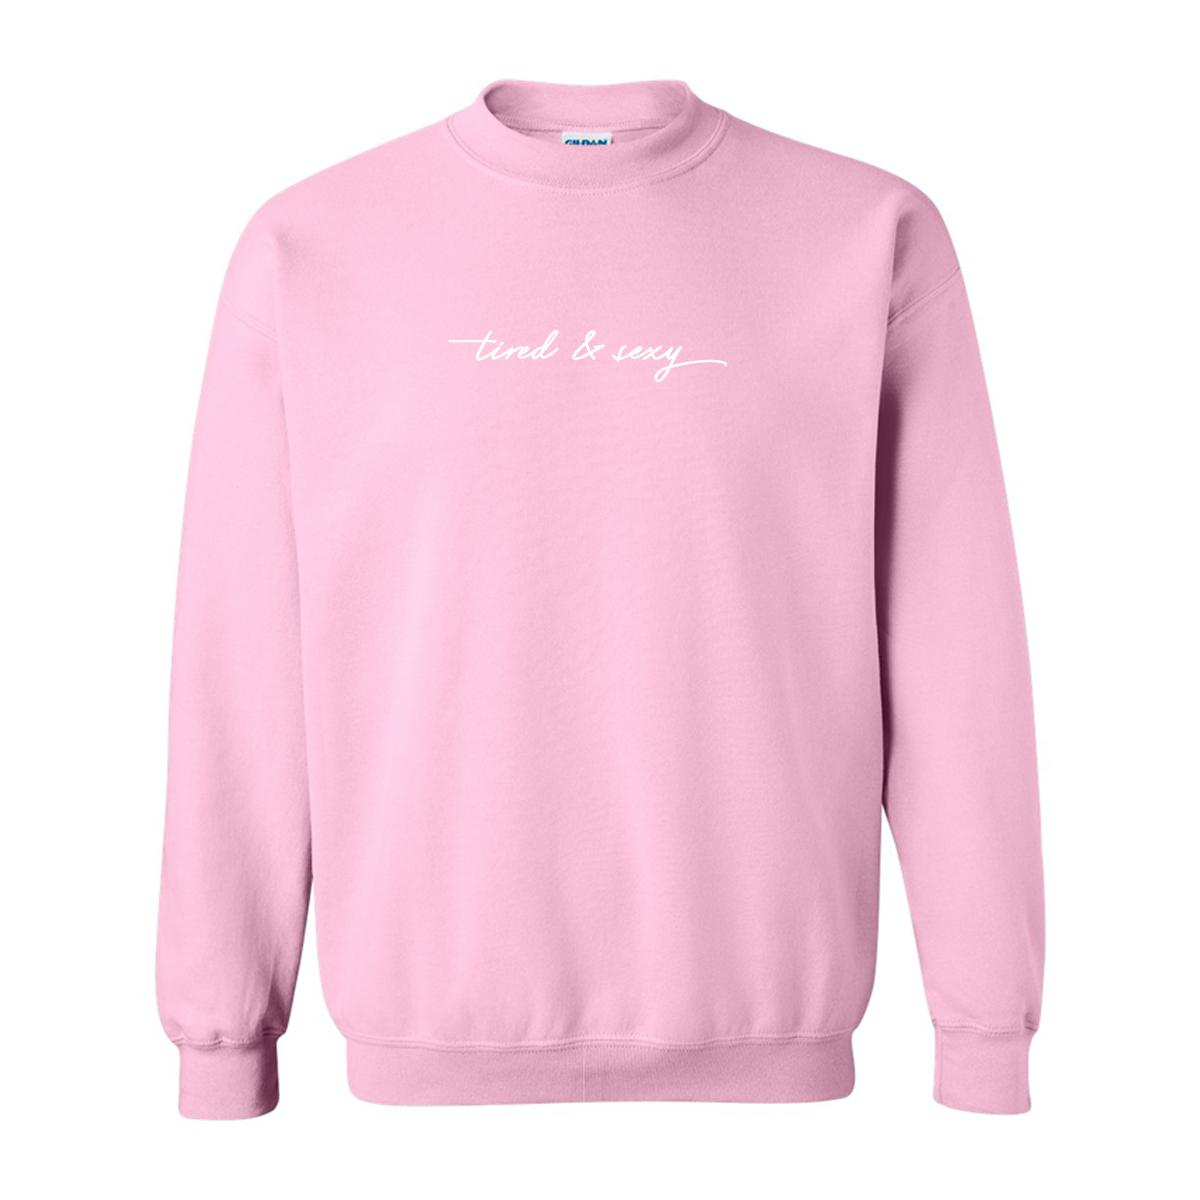 Tired And Sexy Crewneck